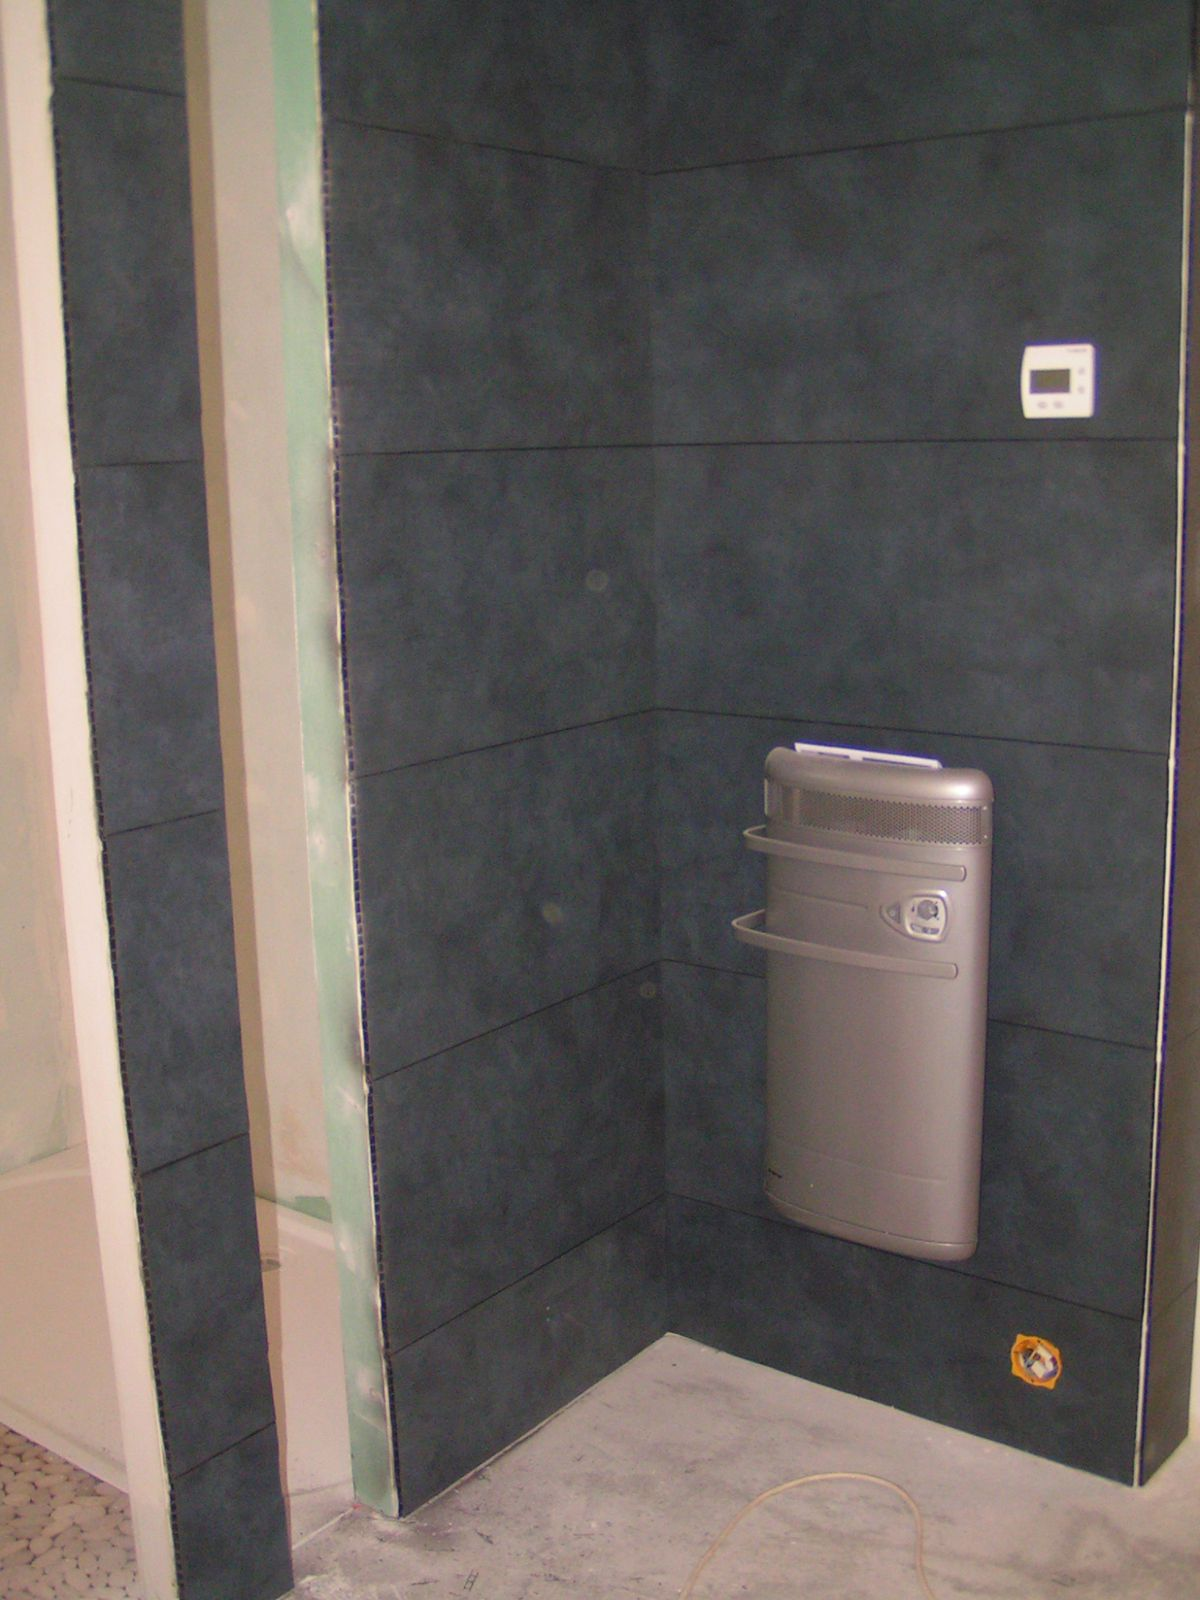 Agrafer du lambris bois travaux renovation ajaccio - Lambris pvc mur salle de bain ...